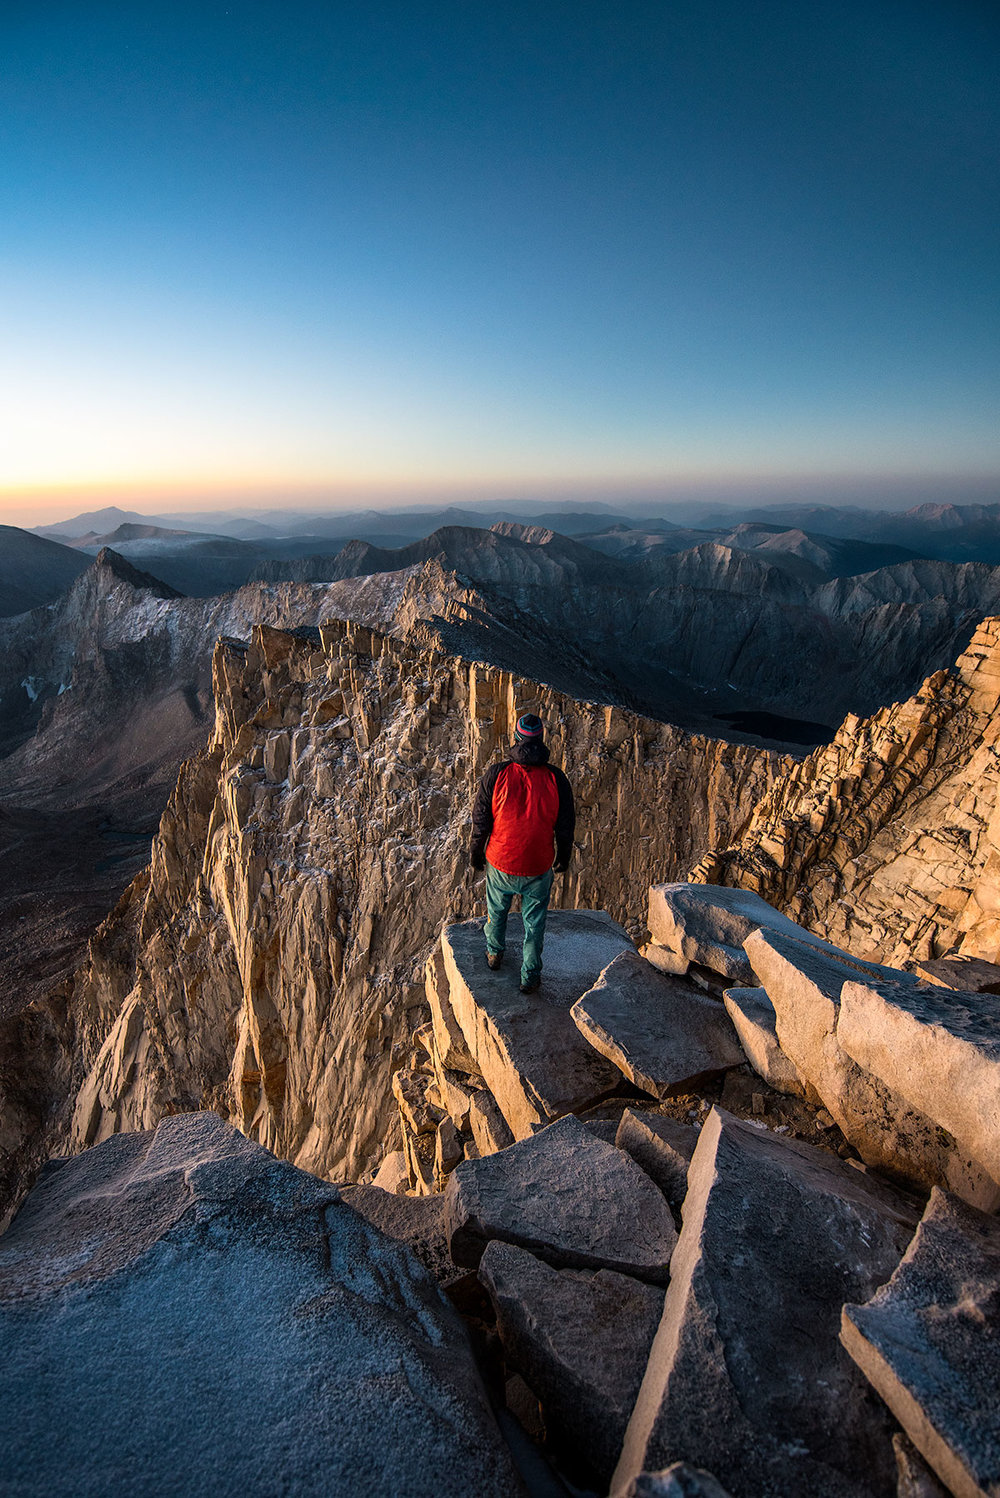 austin-trigg-patagonia-hiking-john-muir-trail-wilderness-california-adventure-outside-camp-sierra-nevada-lifestyle-mt-whitney-summit-sunrise-alpine-spine.jpg